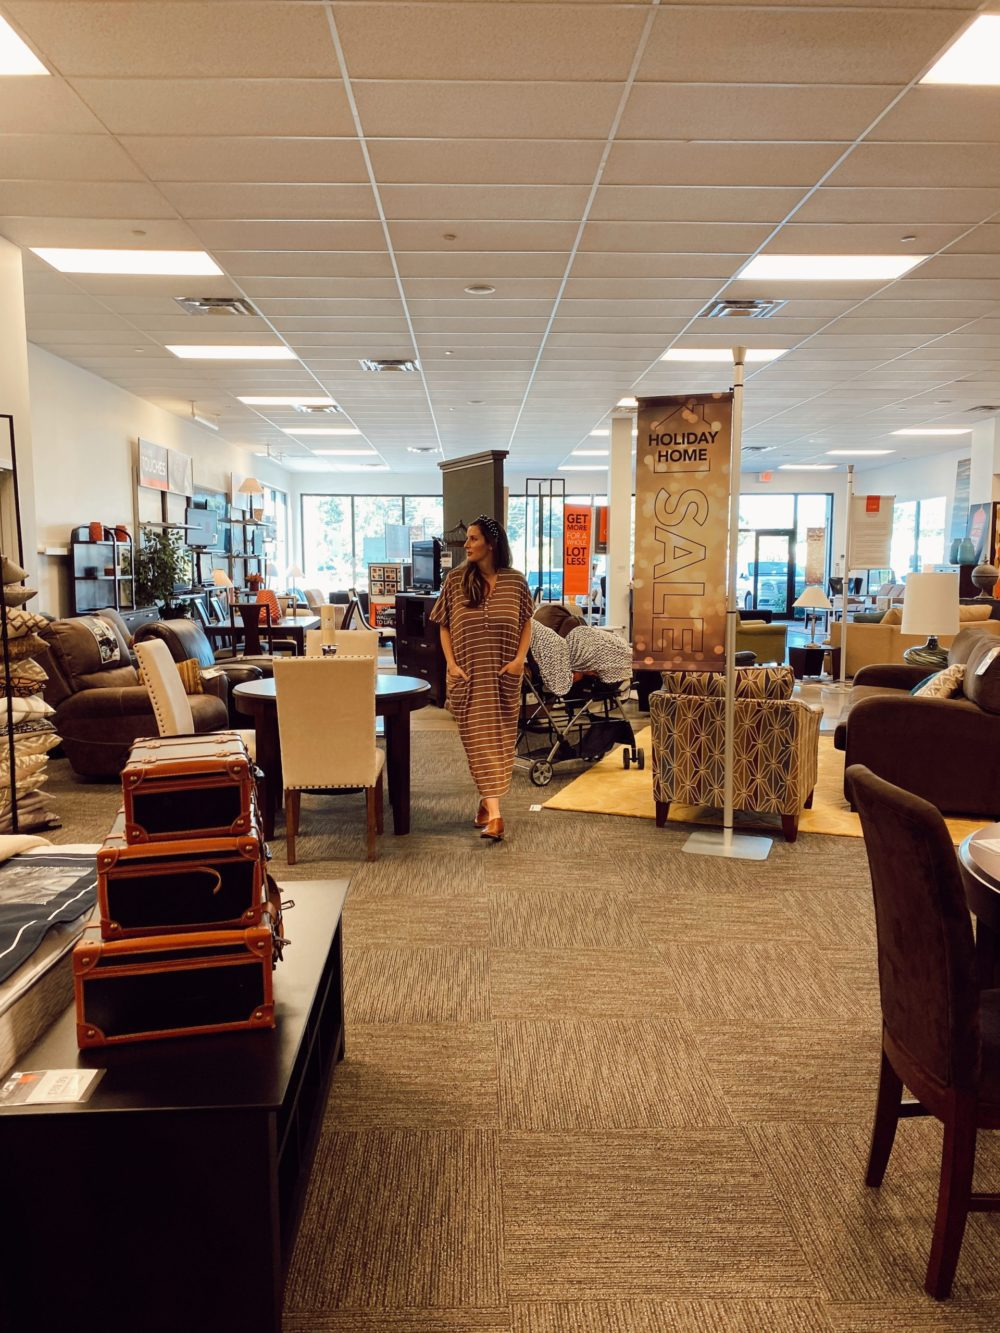 7 Geniously Efficient Mom Hacks for Home Design | 7 Genius Efficient Home Design Hacks for Moms by popular Florida life and style blog, Fresh Mommy Blog: image of a mom walking through CORT furniture outlet.